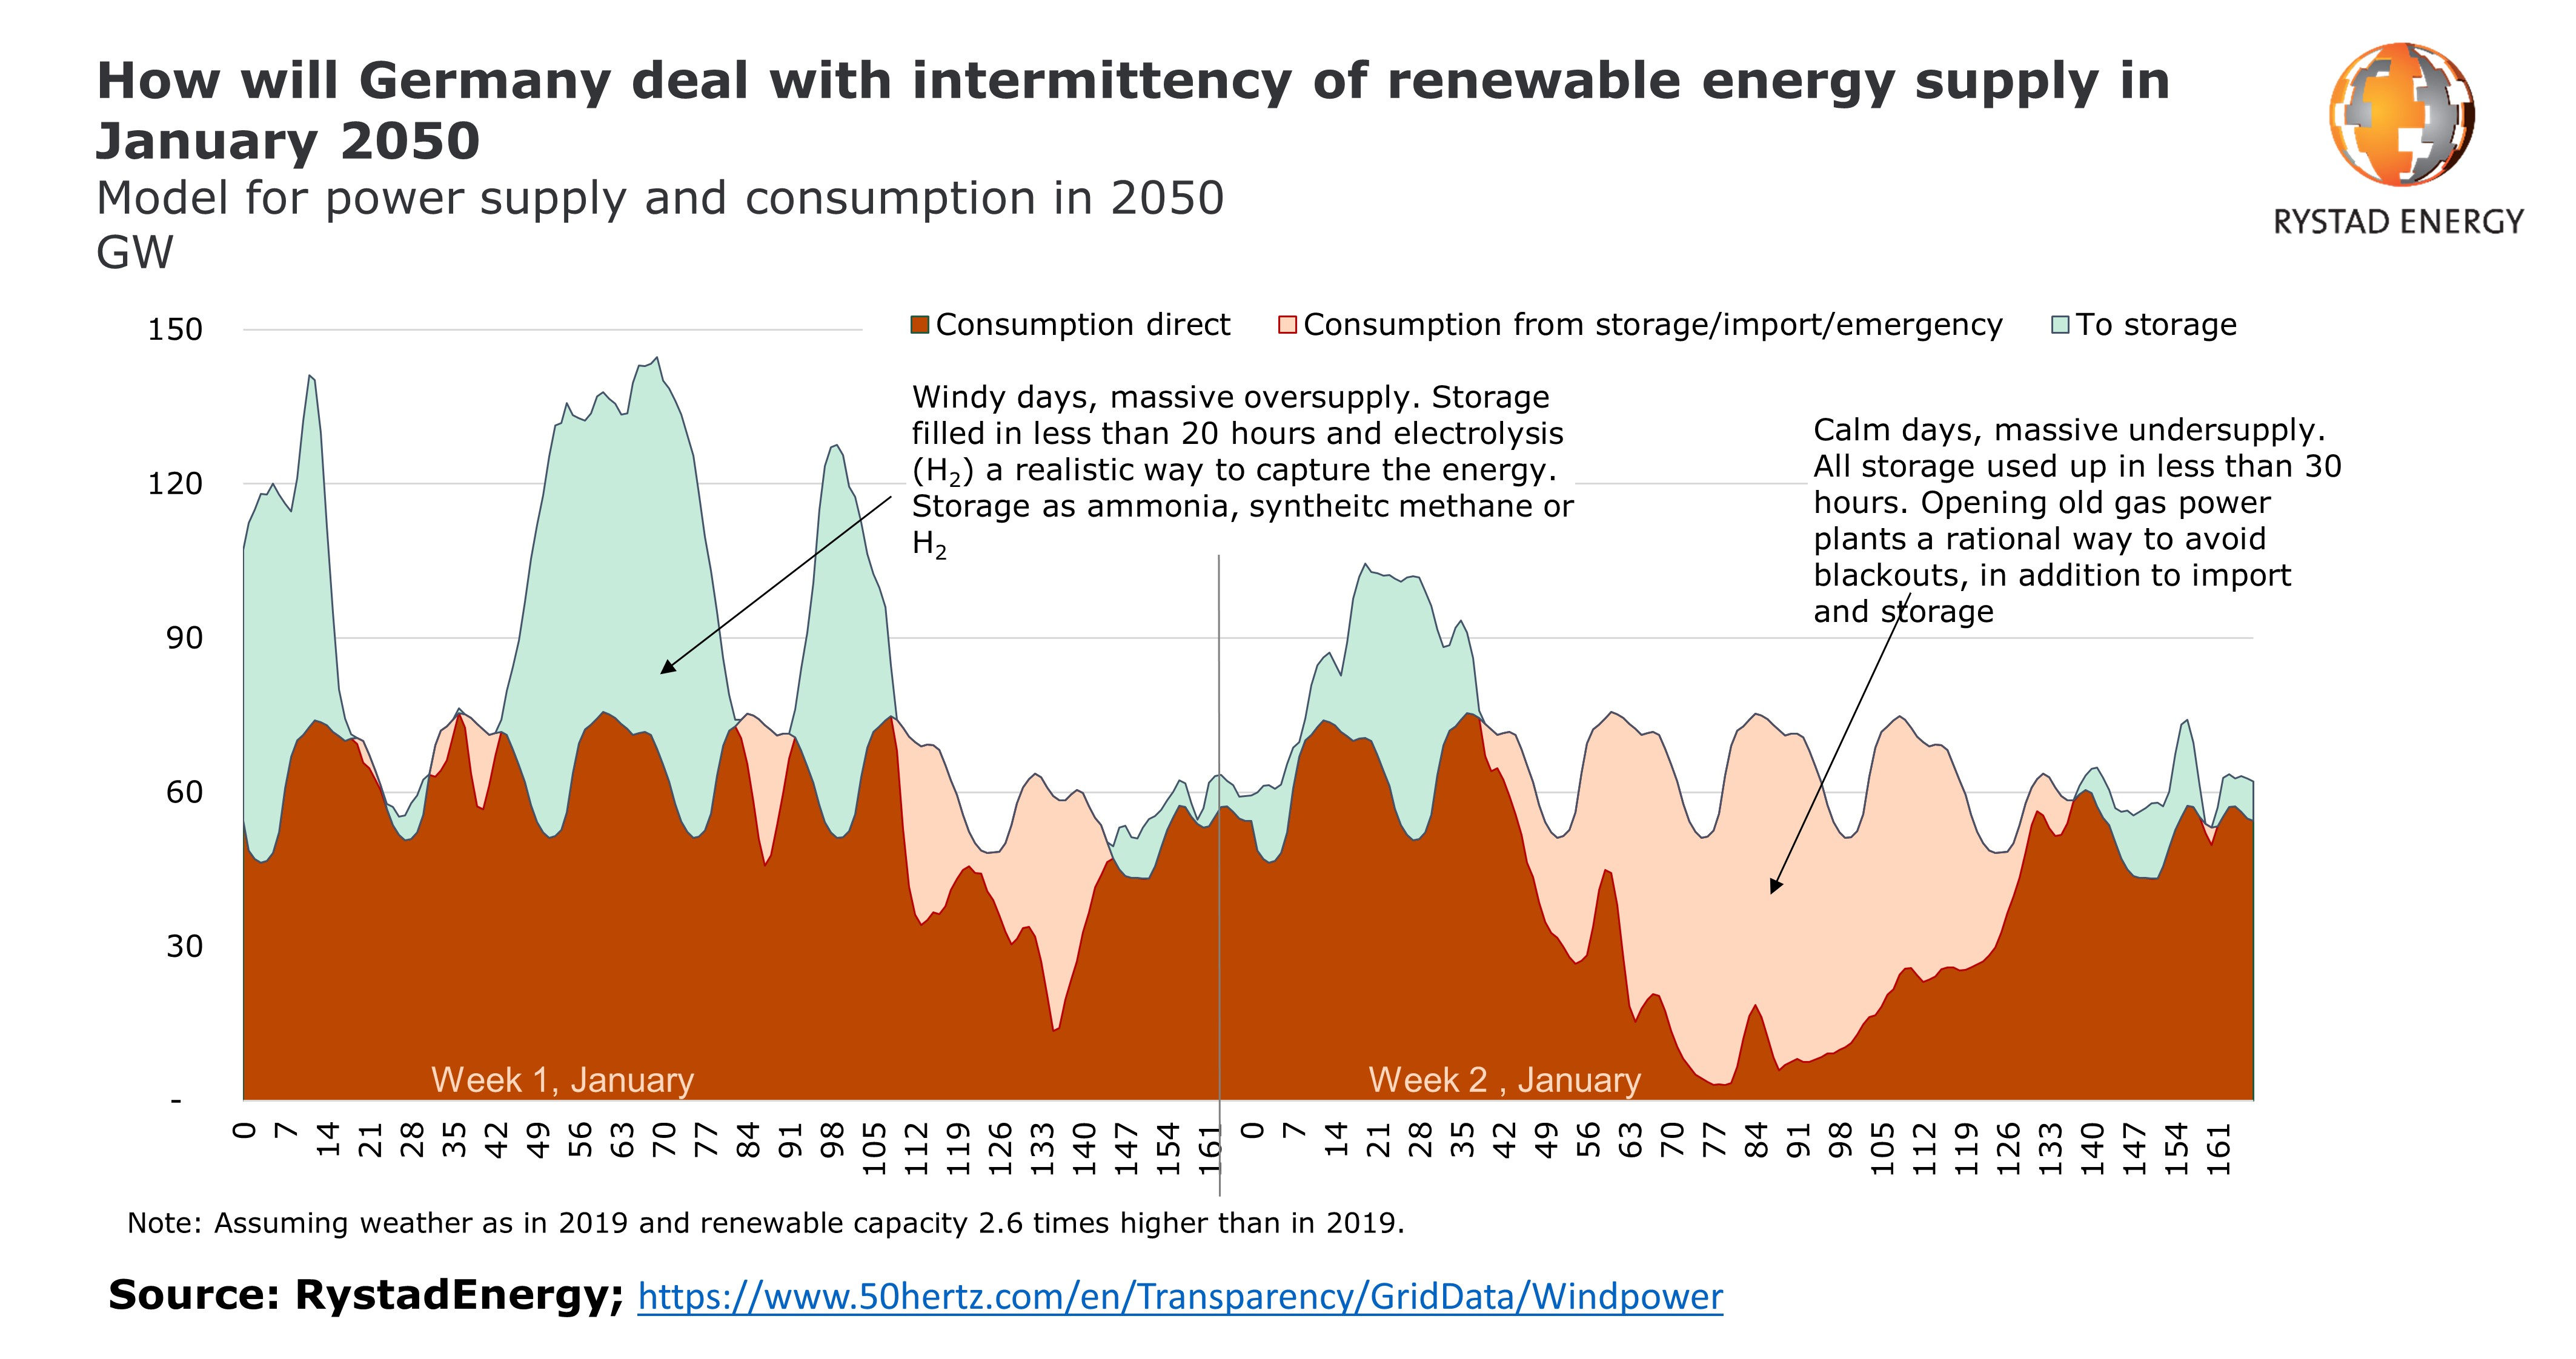 Graph showing how Germany will deal with intermittency of renewable energy supply in January 2050